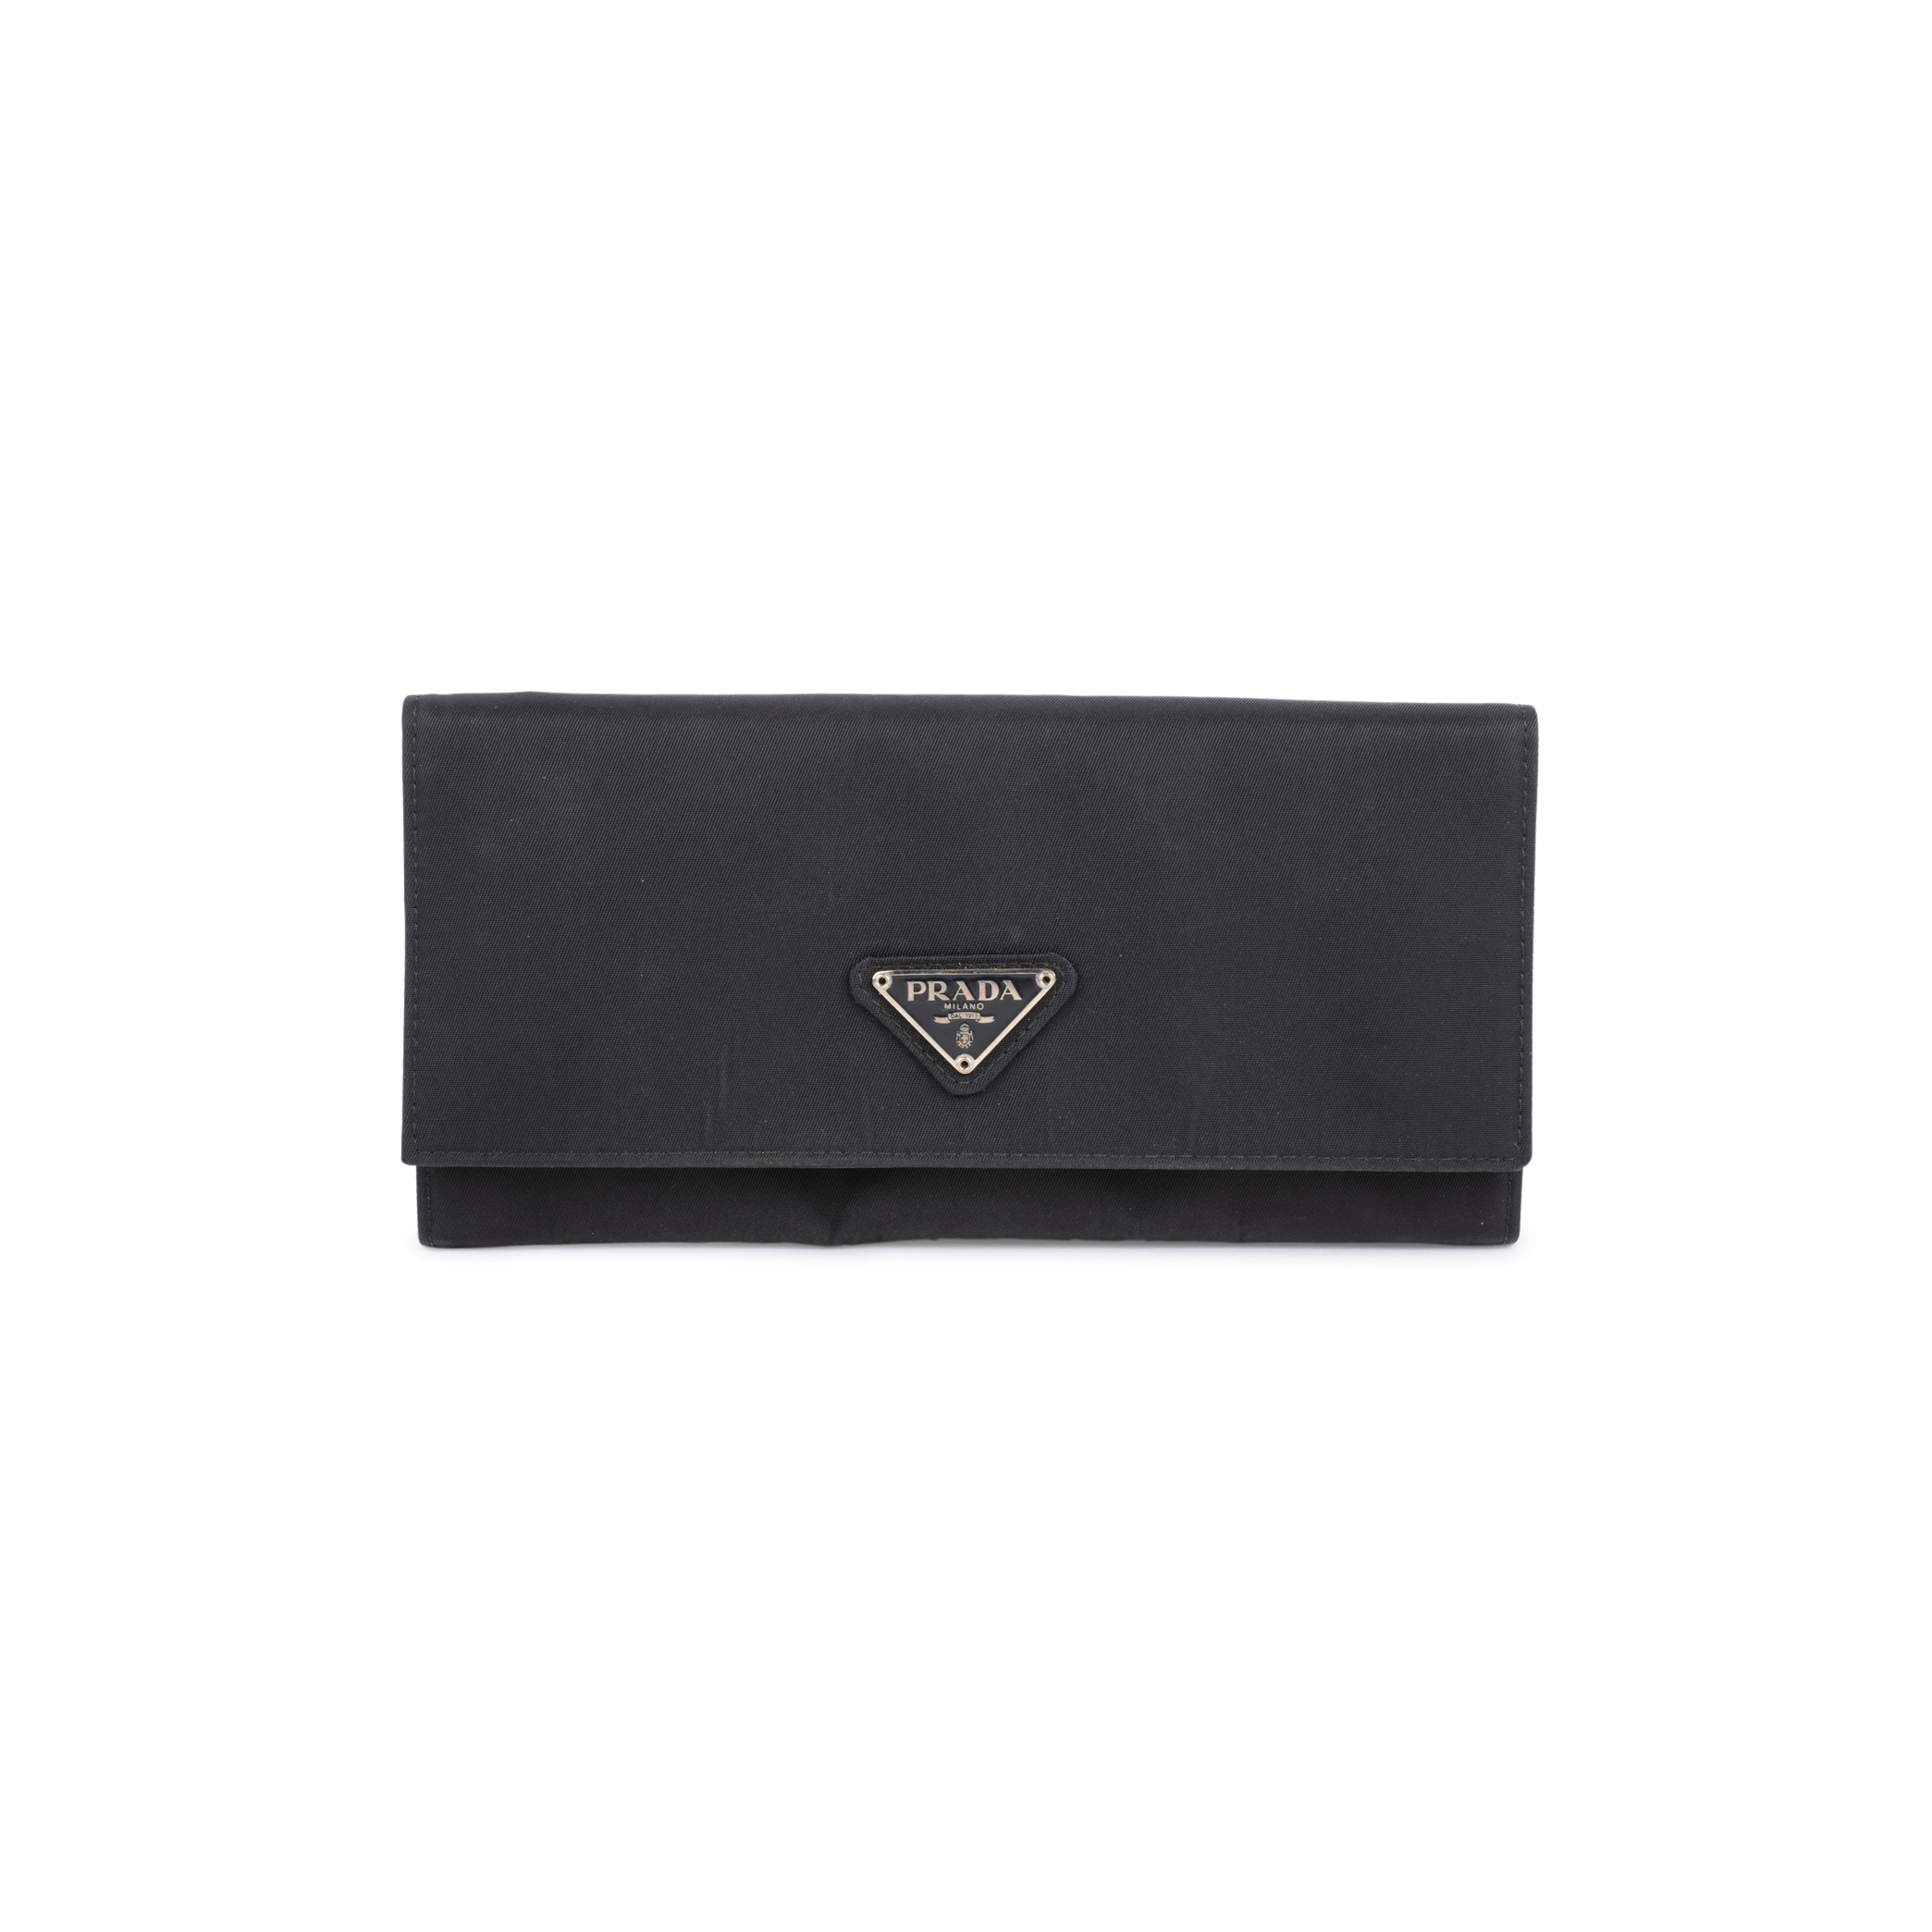 8c8a9b4143 Authentic Second Hand Prada Foglio Tessuto Long Wallet (PSS-594-00005) |  THE FIFTH COLLECTION